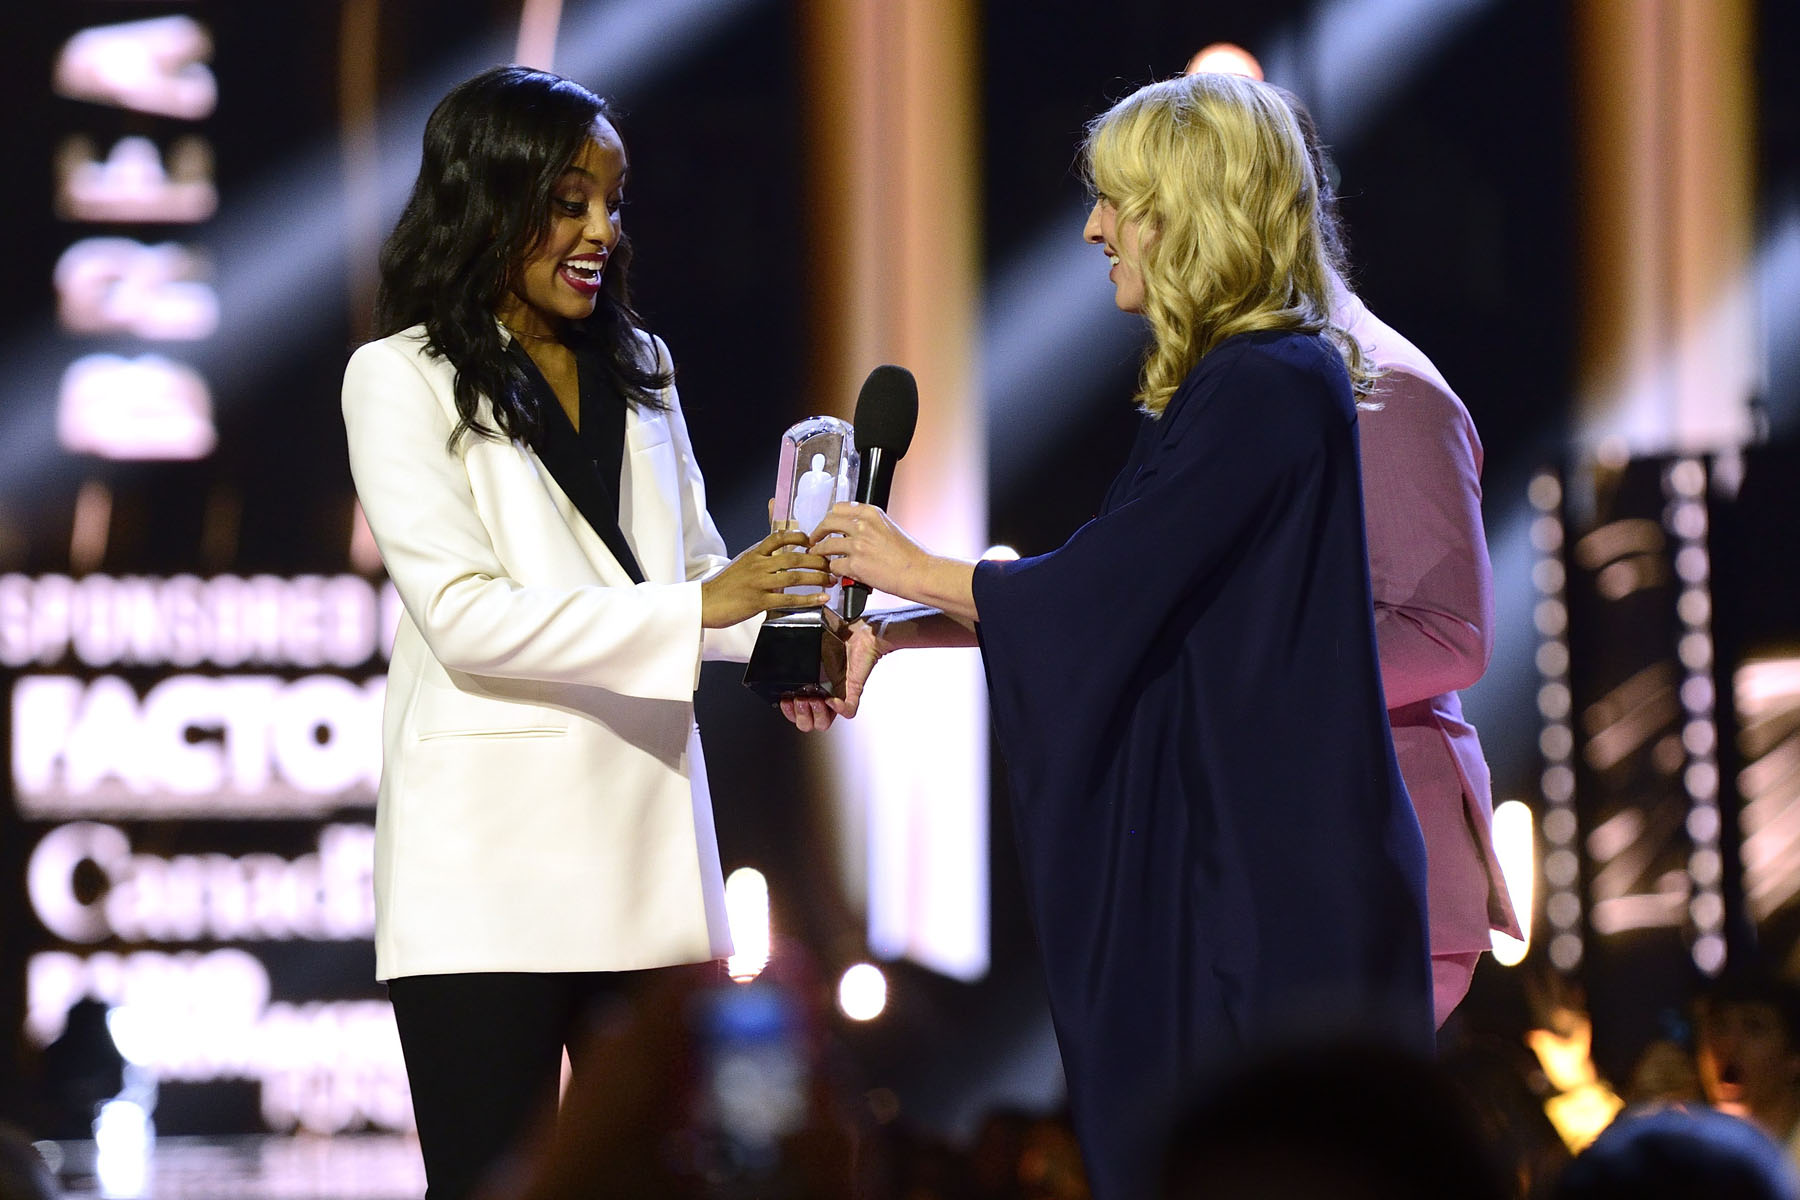 Edmonton native Ruth B. won her first JUNO Award for Breakthrough Artist of the Year.